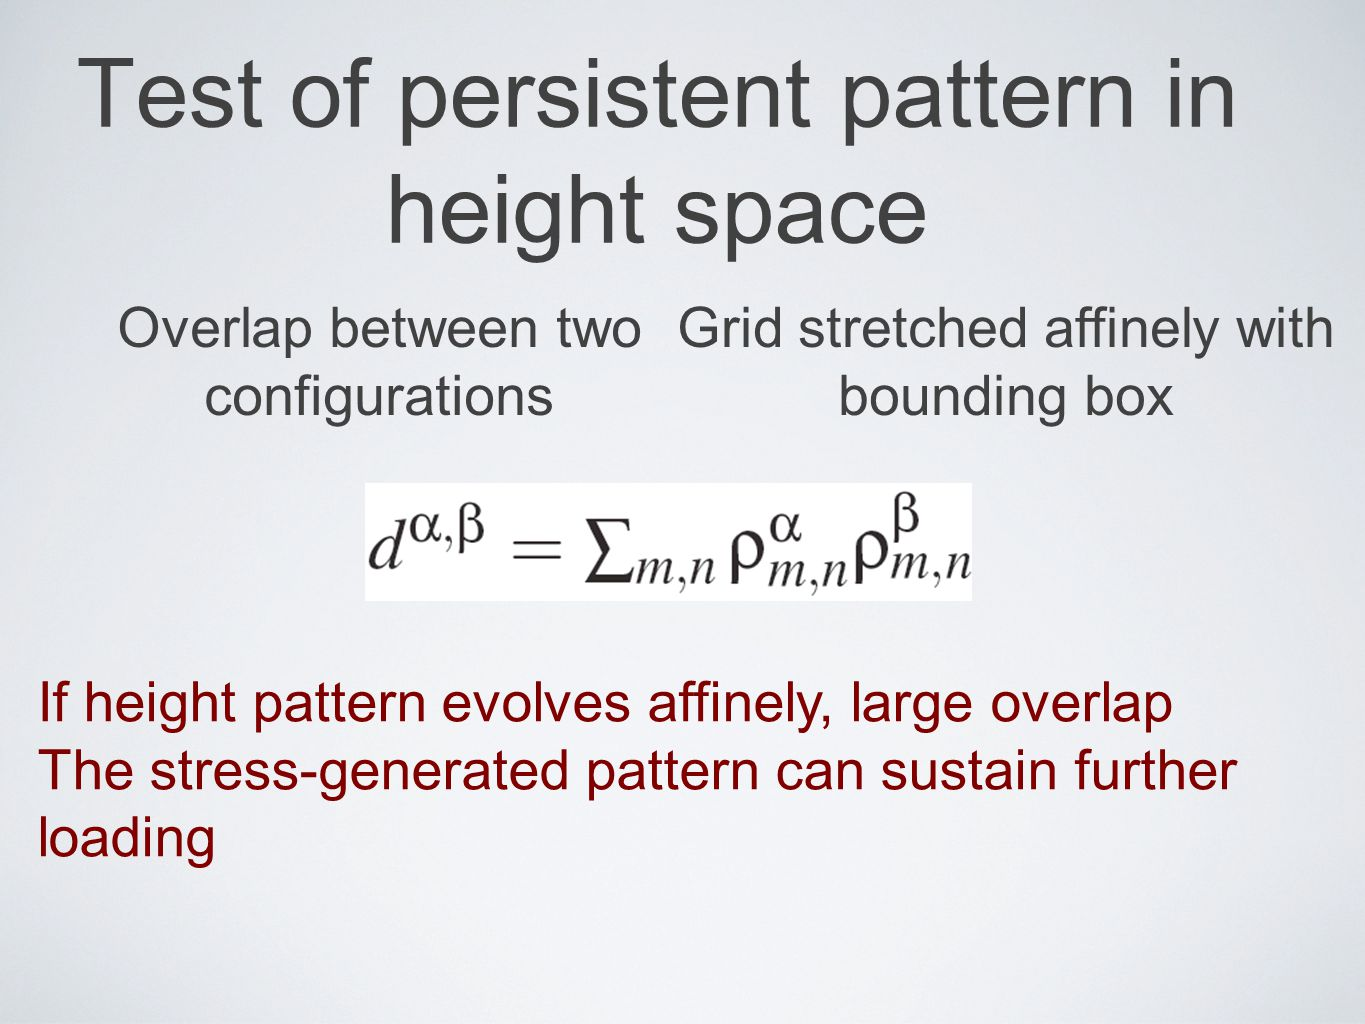 Test of persistent pattern in height space